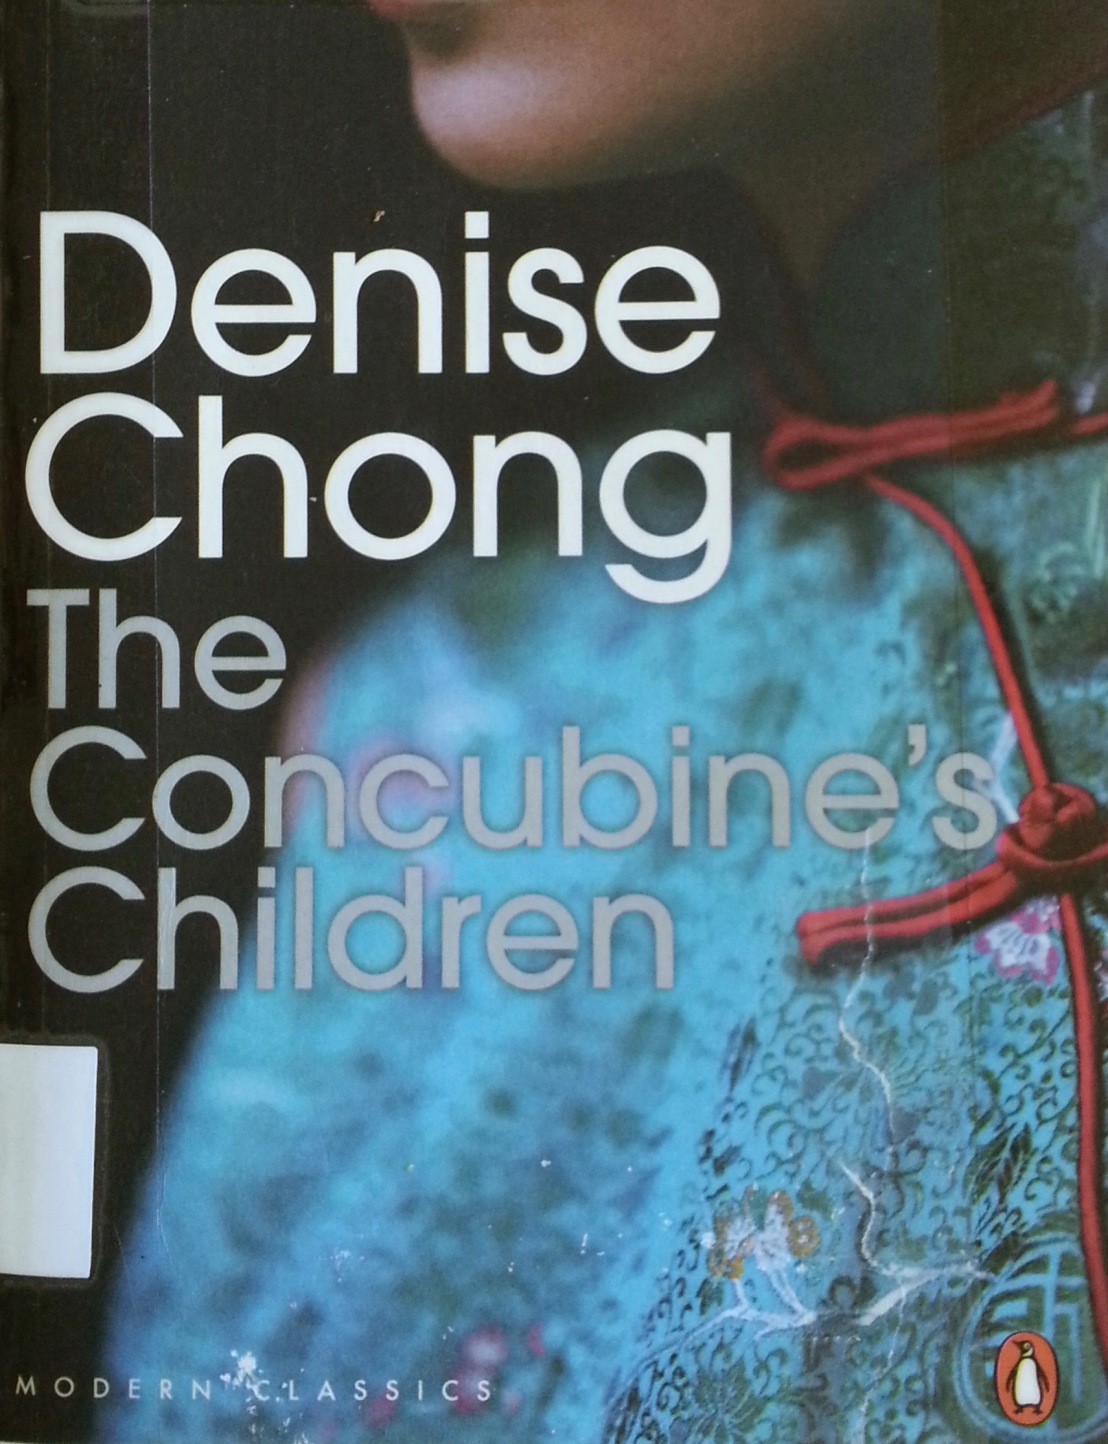 Denise Chong's — The concubine's children*****